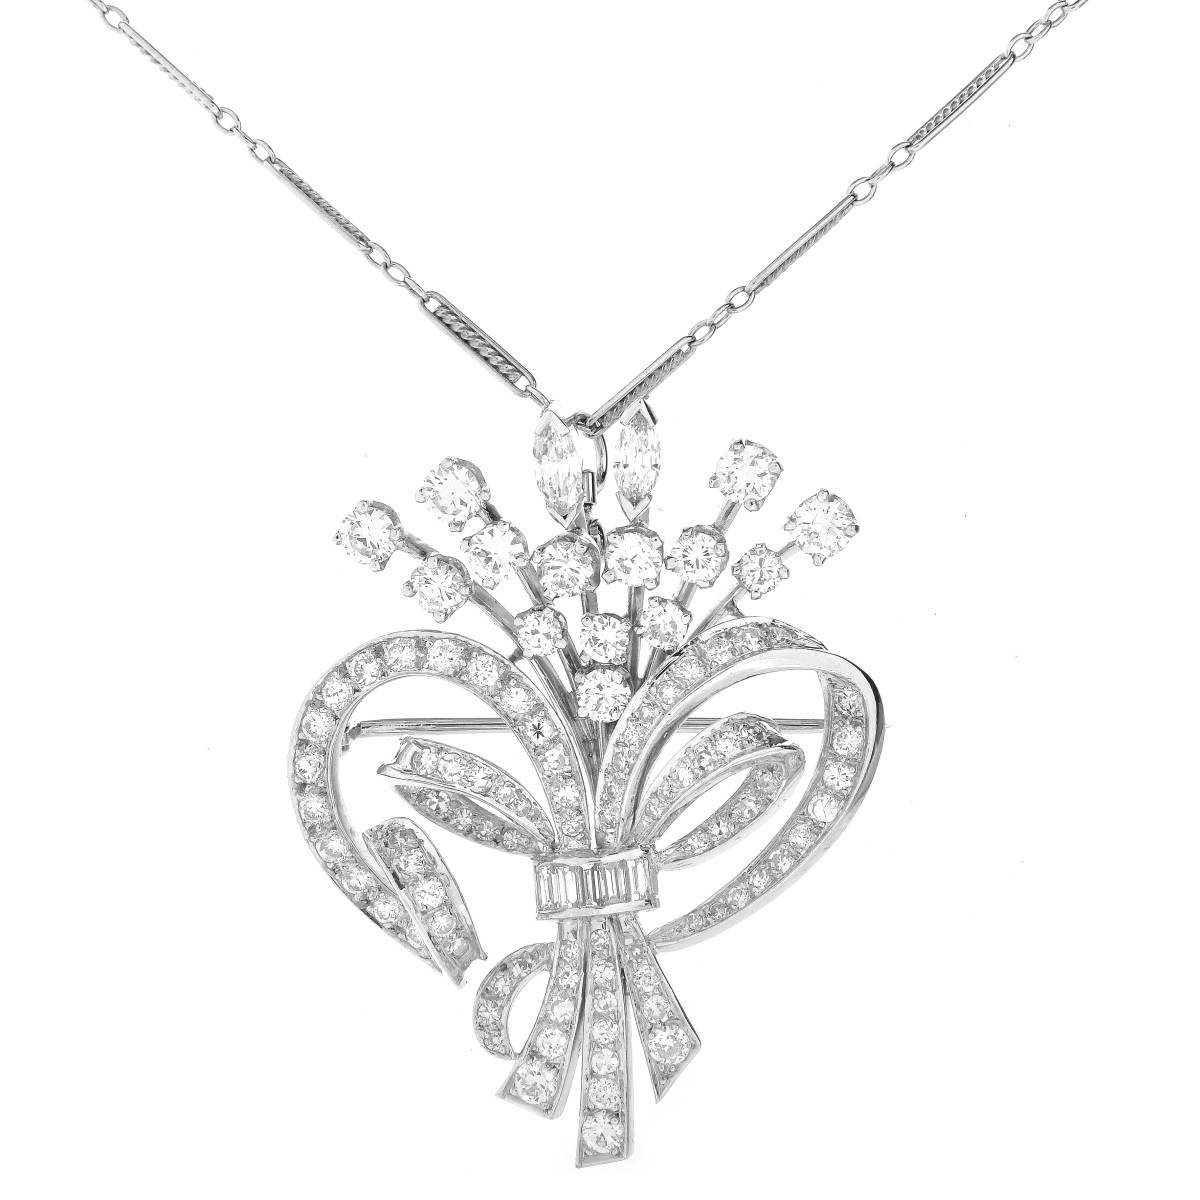 7.50ct TW Diamond and Platinum Pendant / Brooch